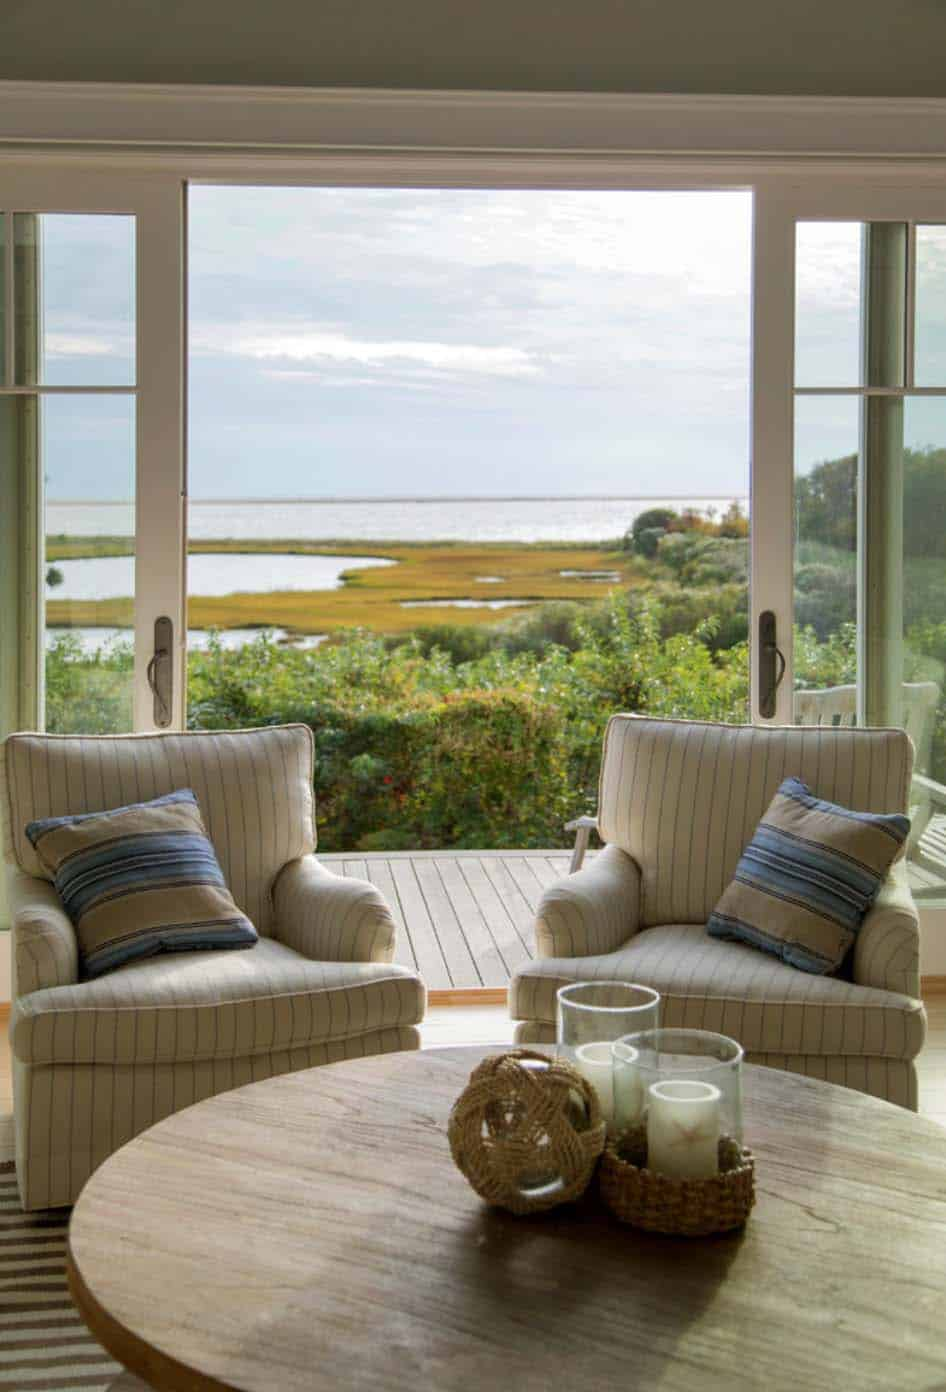 Beach House-Marthas Vineyard Interior Design-04-1 Kindesign